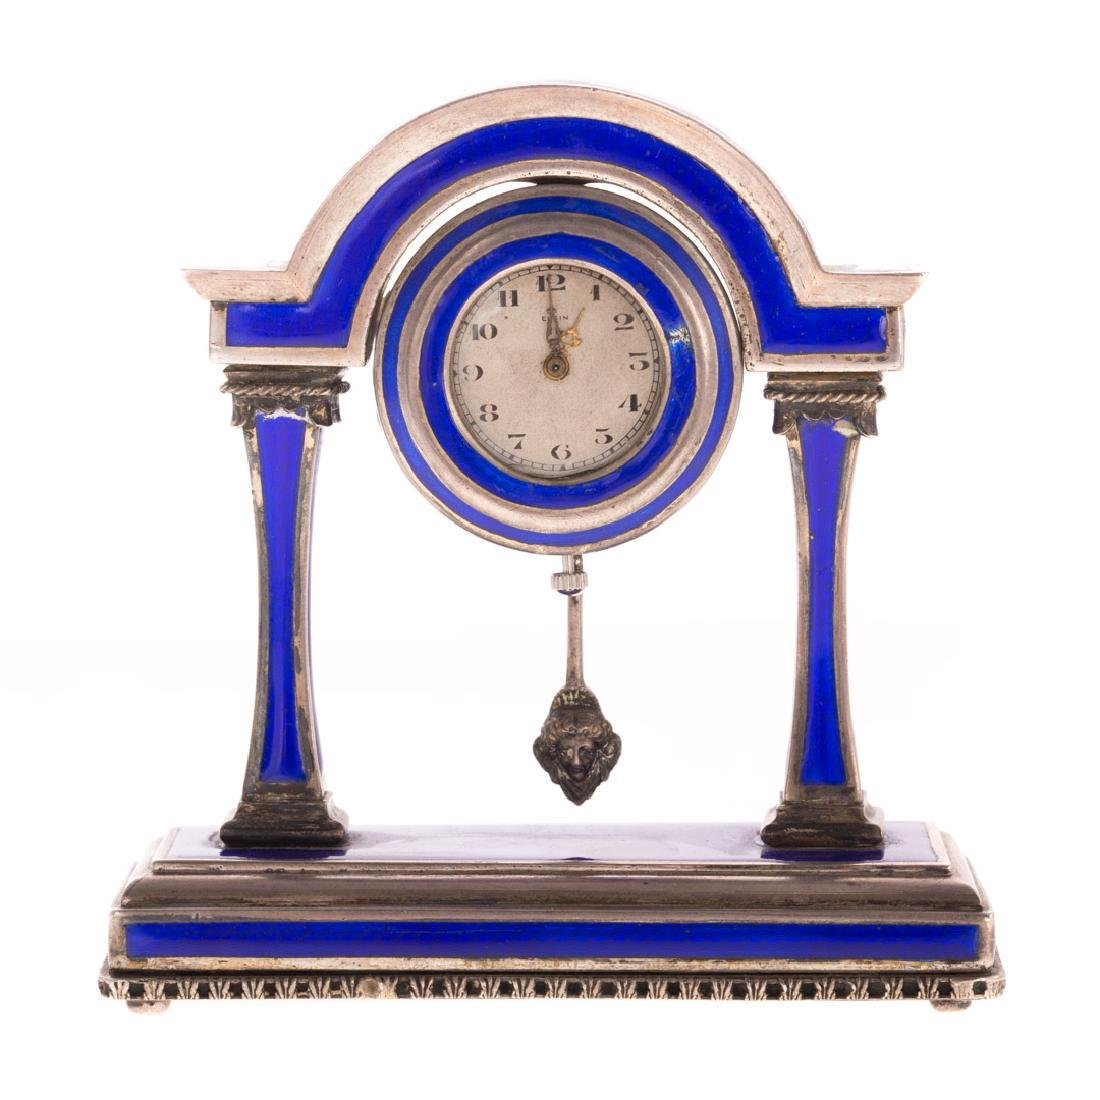 A French Blue Enamel Pedestal Clock